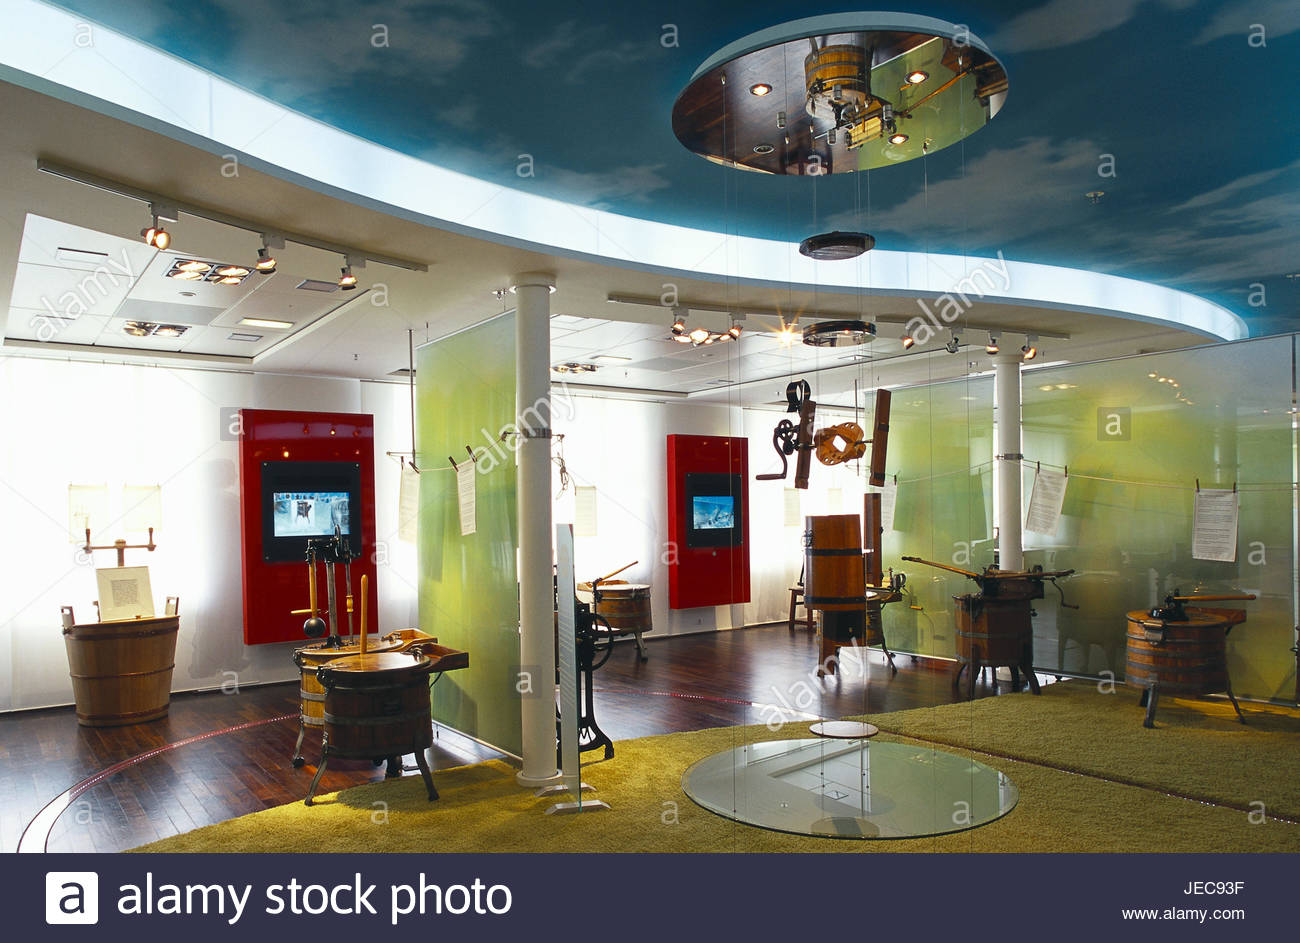 Germany, North Rhine-Westphalia, Gütersloh, Miele museum, domestic appliances, washing machines, Teutoburger - Stock Image